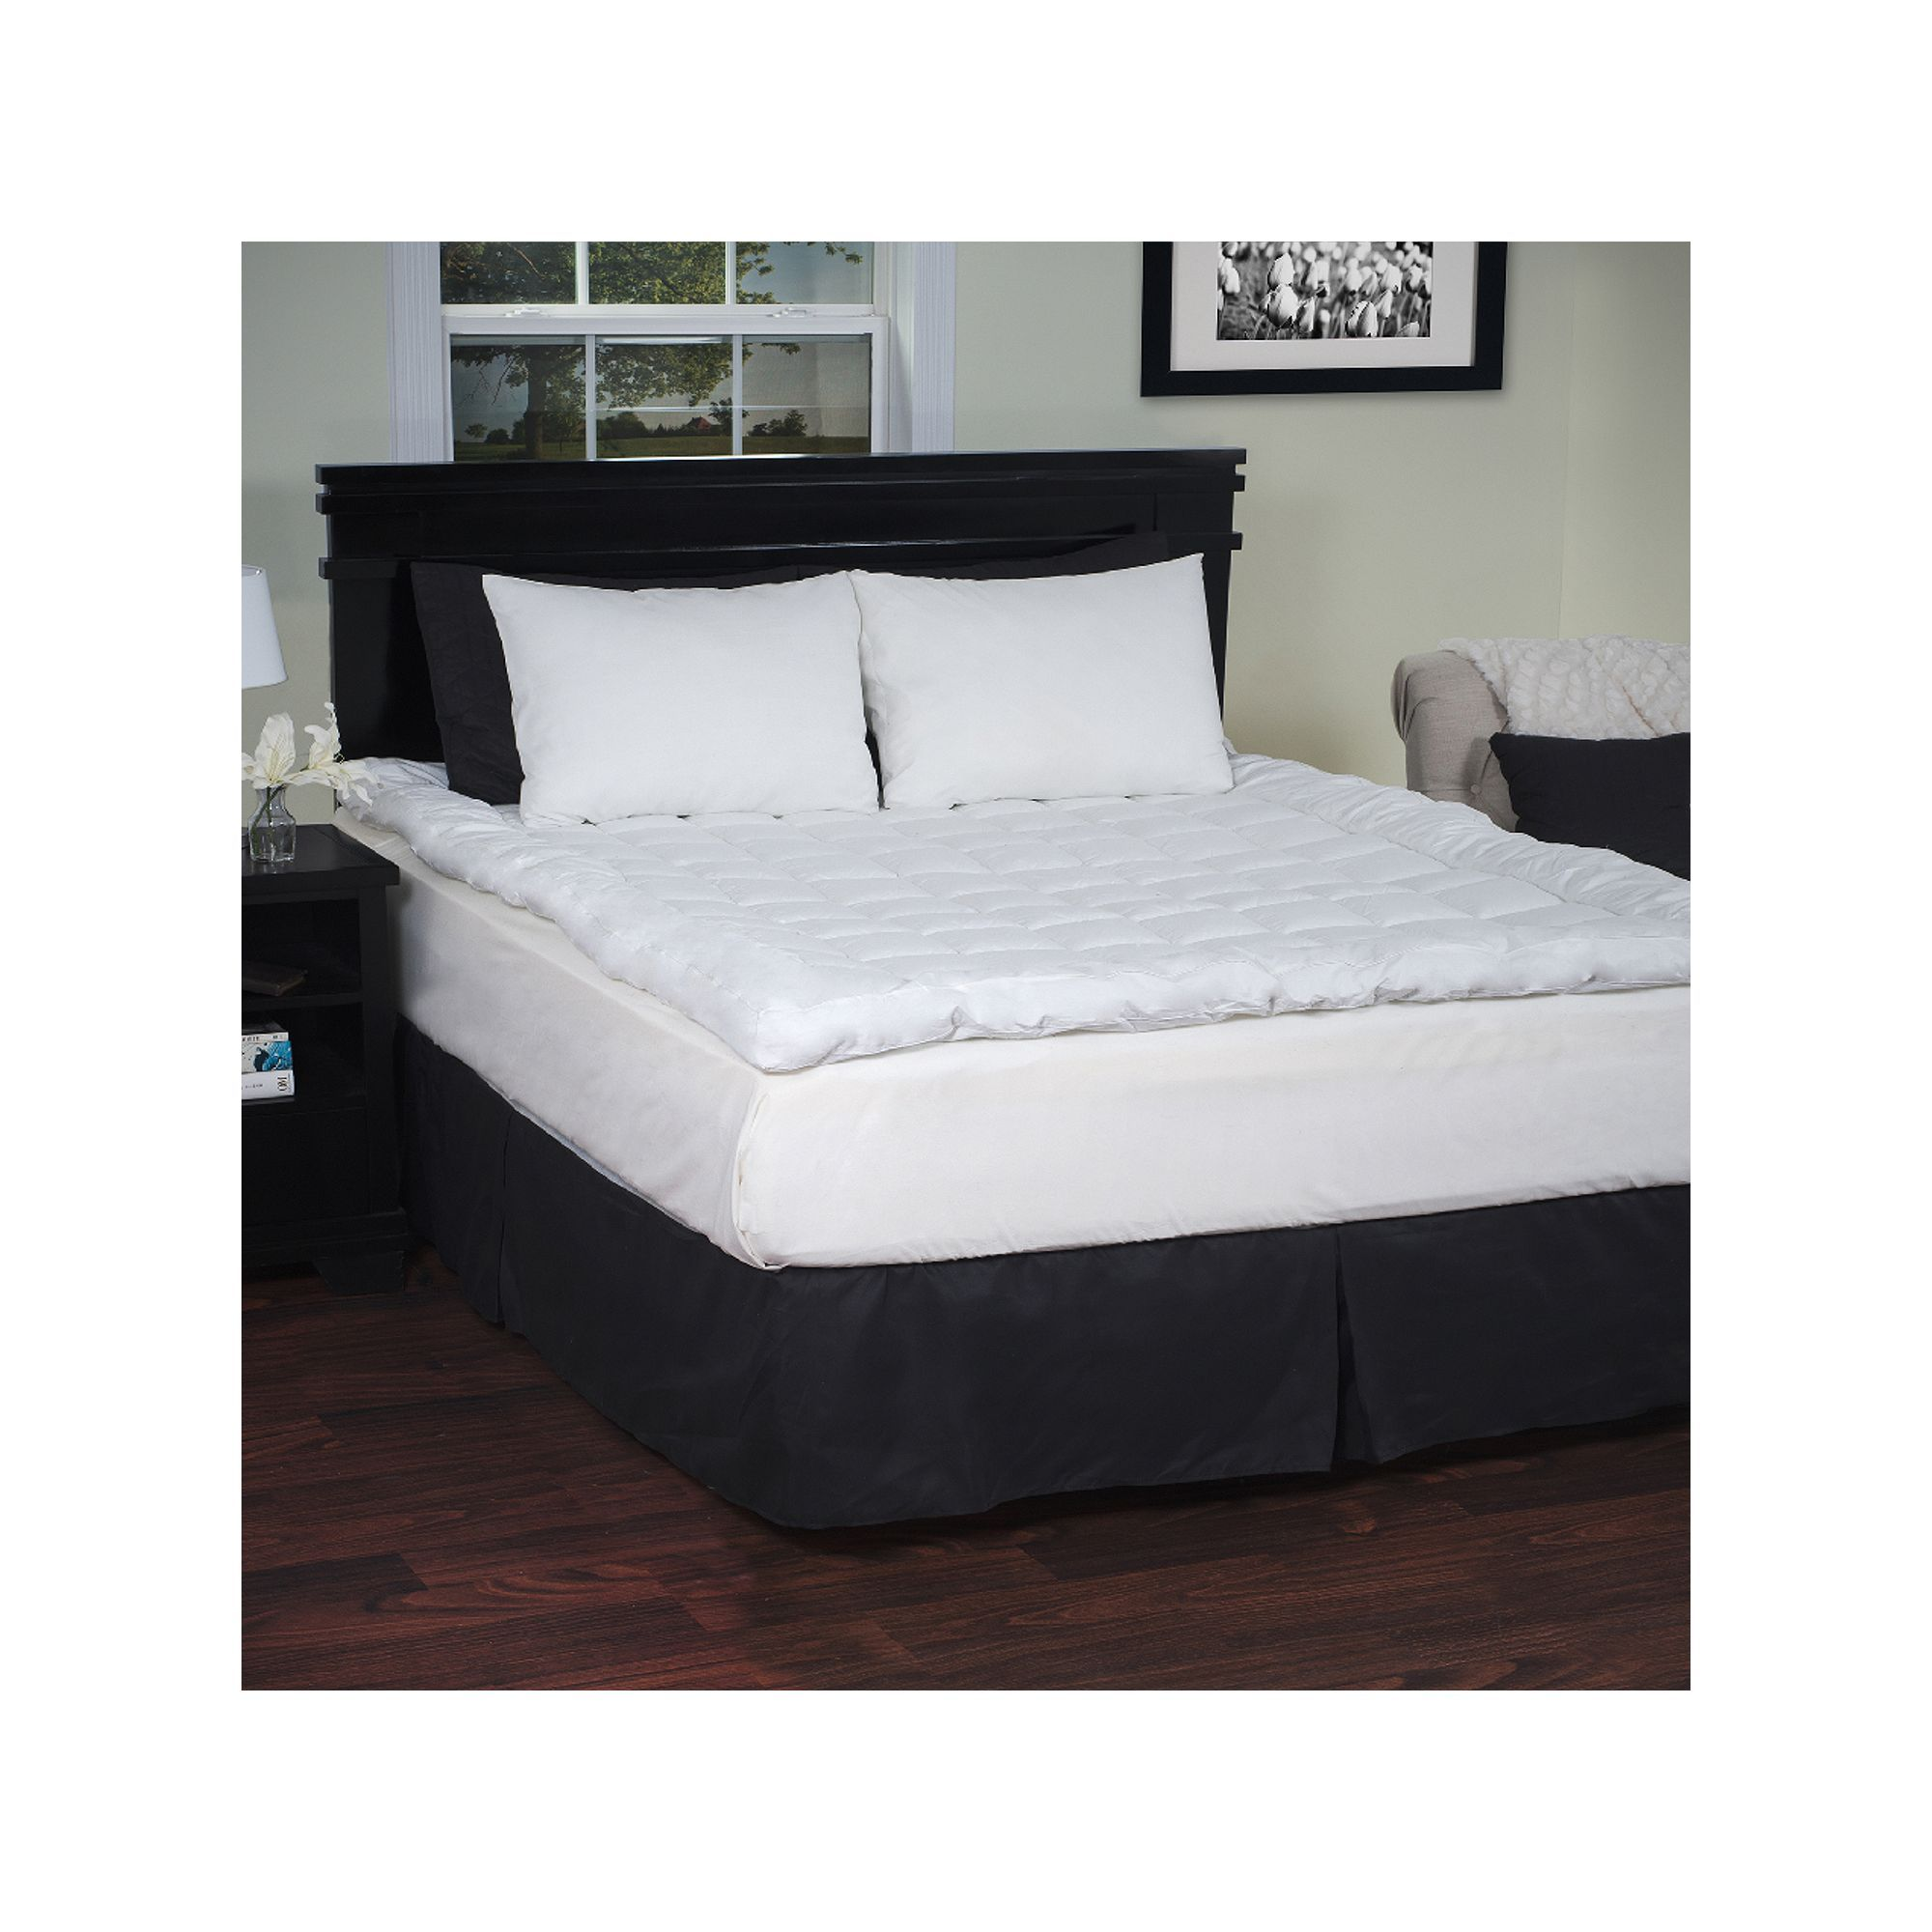 2inch DownAlternative Mattress Topper Mattress, Bed